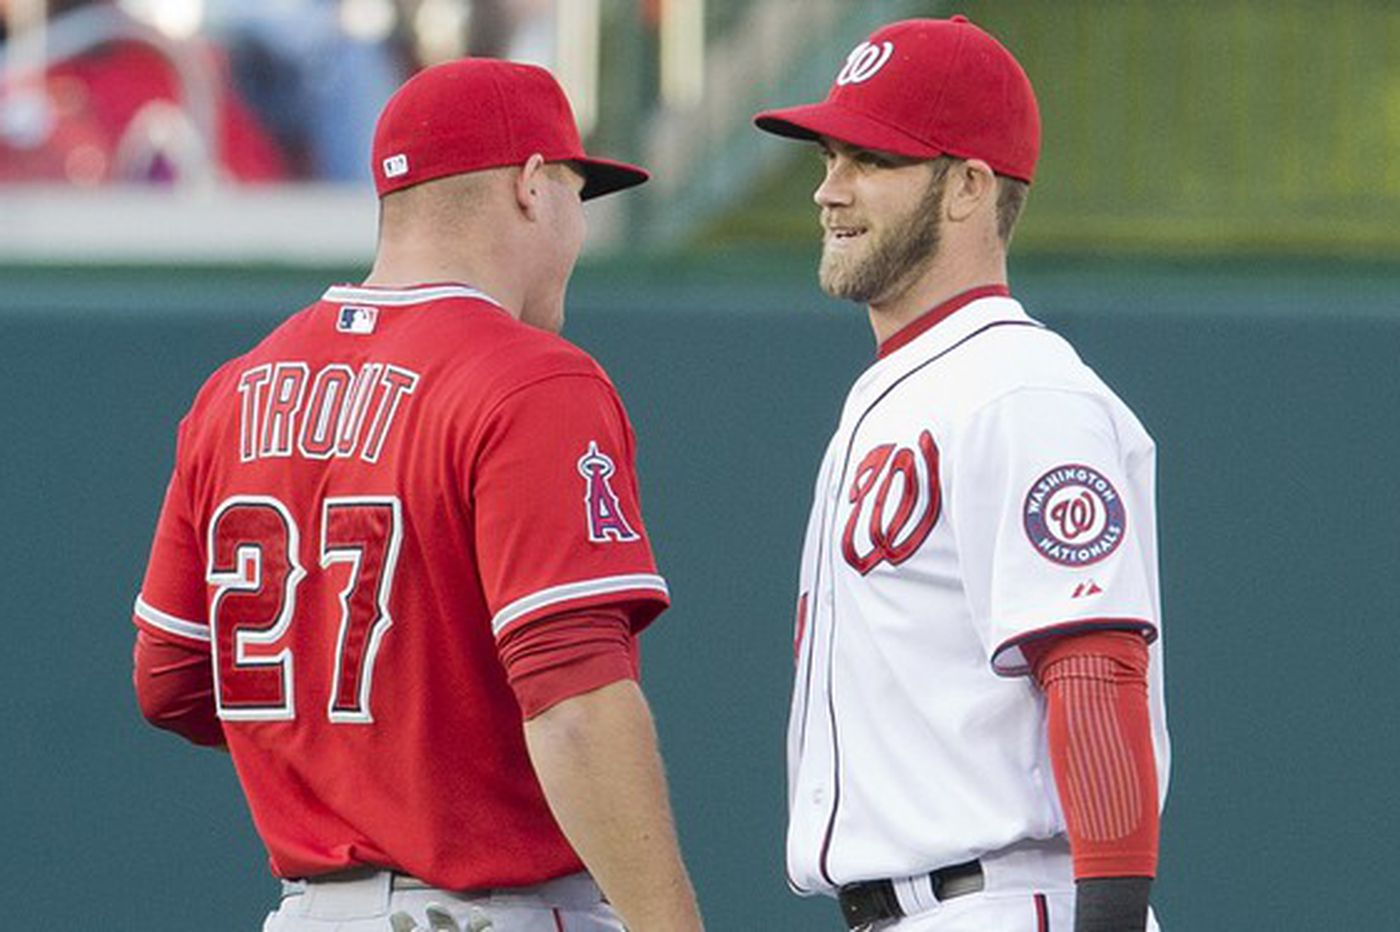 Bryce Harper pleased to see Mike Trout's record-smashing contract 'blow me out of the water'